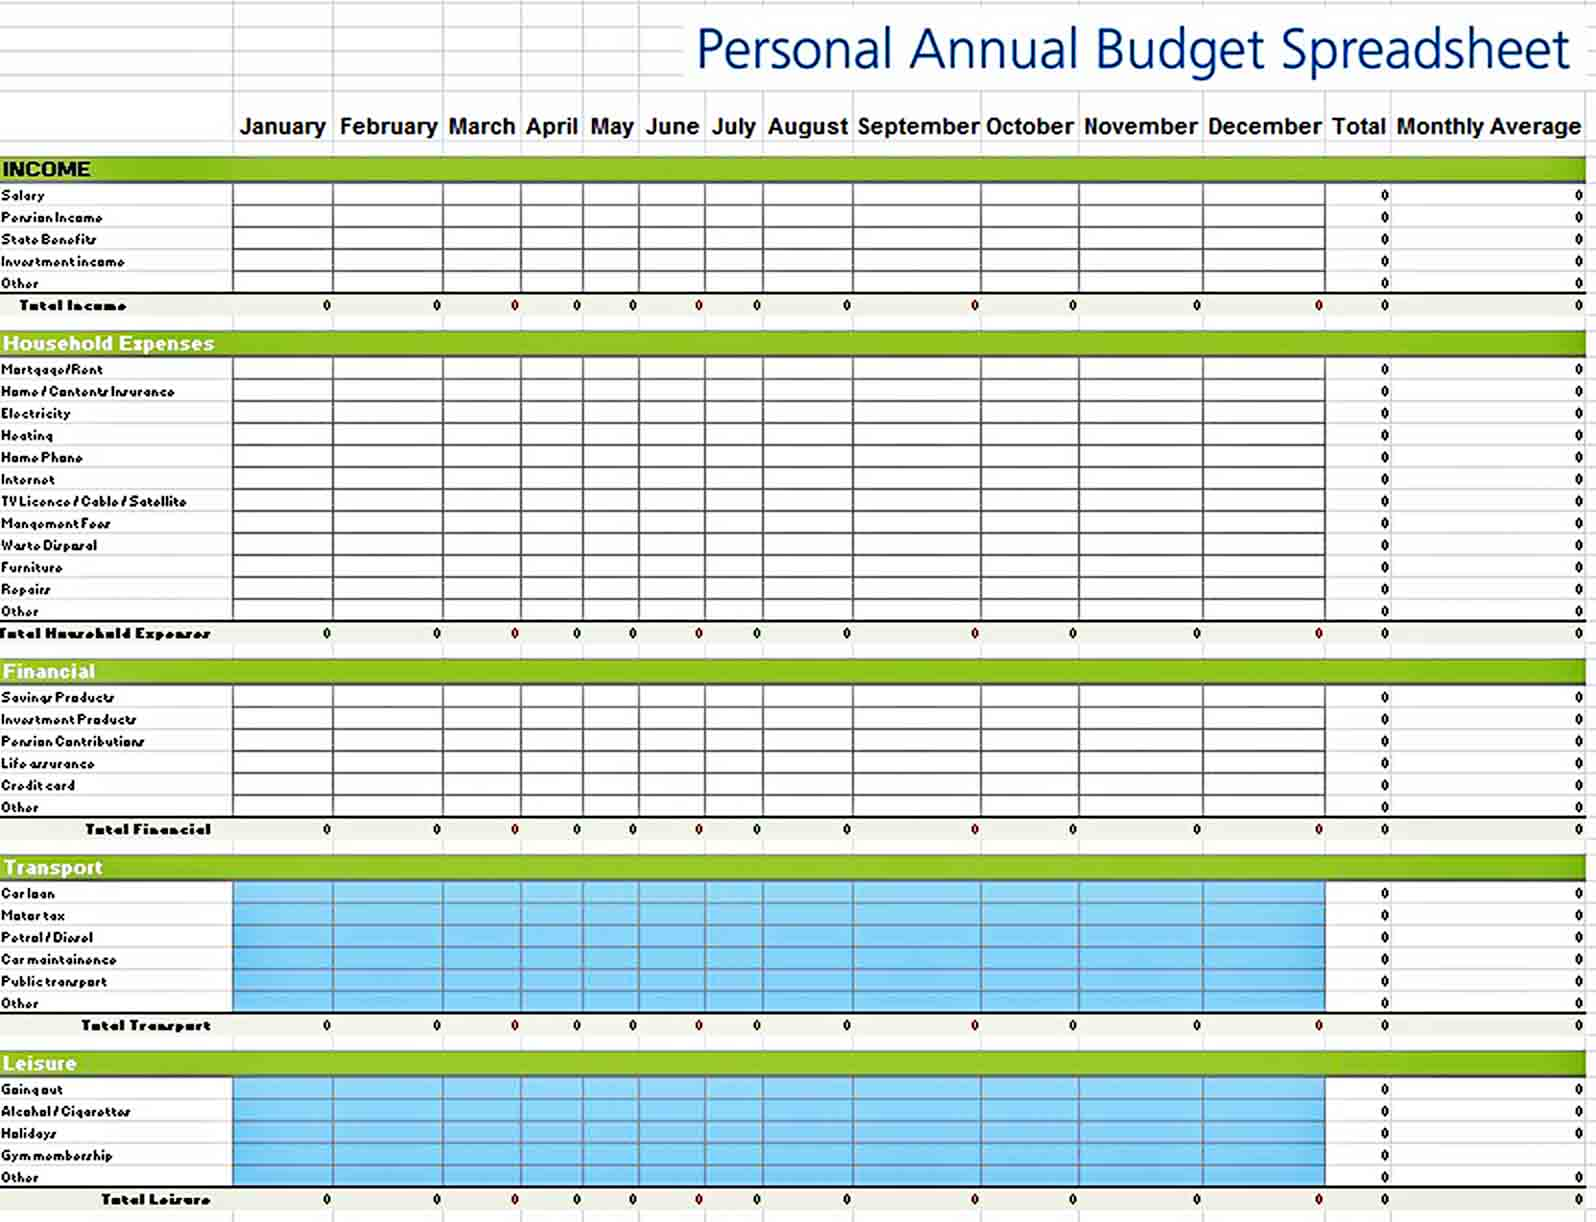 Personal Annual Budget Spreadsheet sample